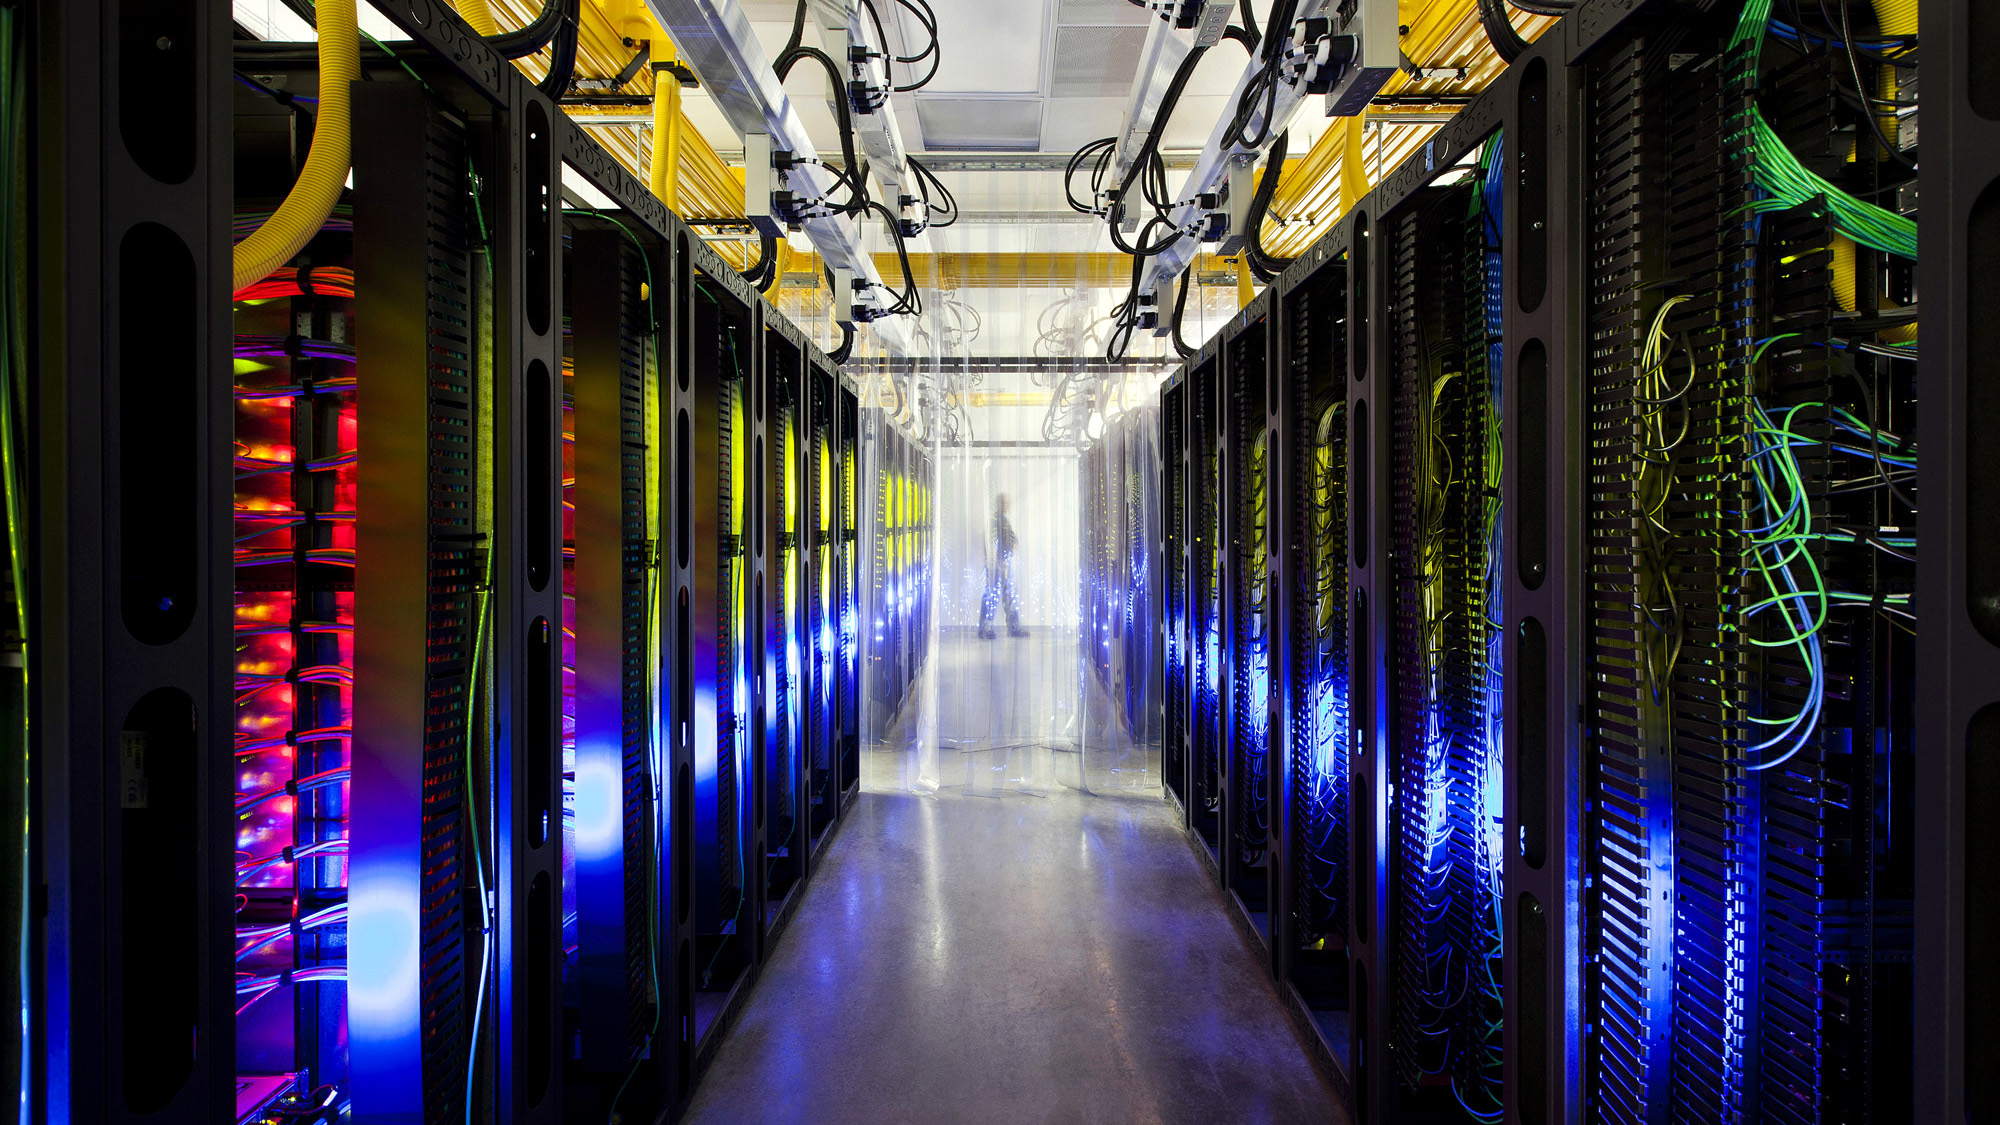 In this undated file photo made available by Google shows the campus-network room at a data center in Council Bluffs, Iowa. With the cooperation of foreign allies, the NSA is potentially gaining access to every email sent or received abroad, or between people abroad, from Google and Yahoo's email services, as well as anything in Google Docs, Maps or Voice, according to a series of articles in the Washington Post.